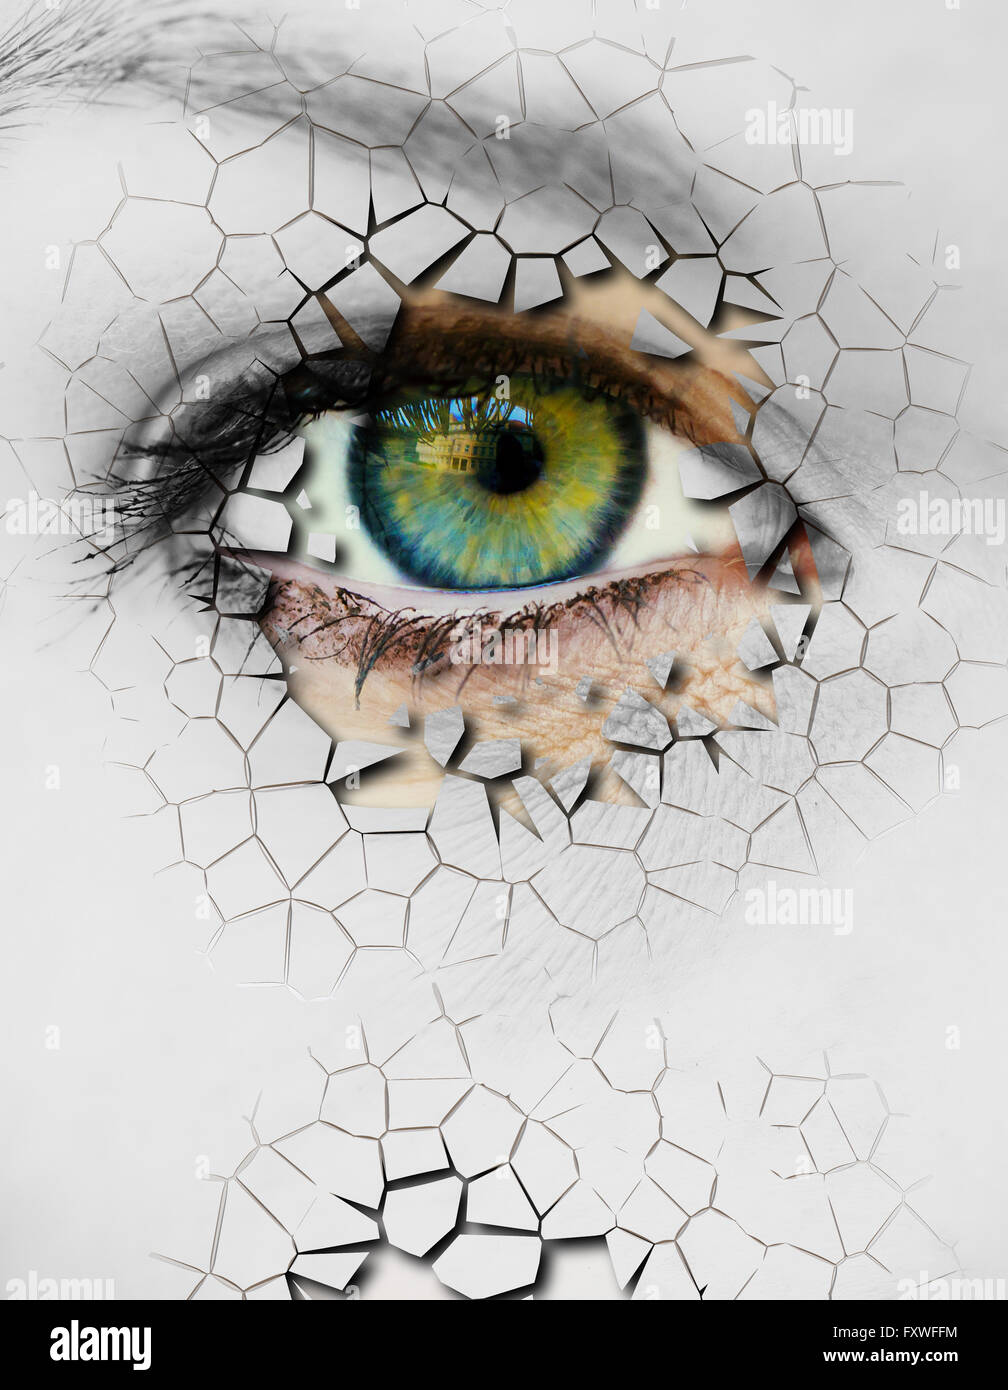 Woman face with cracked surface - Stock Image